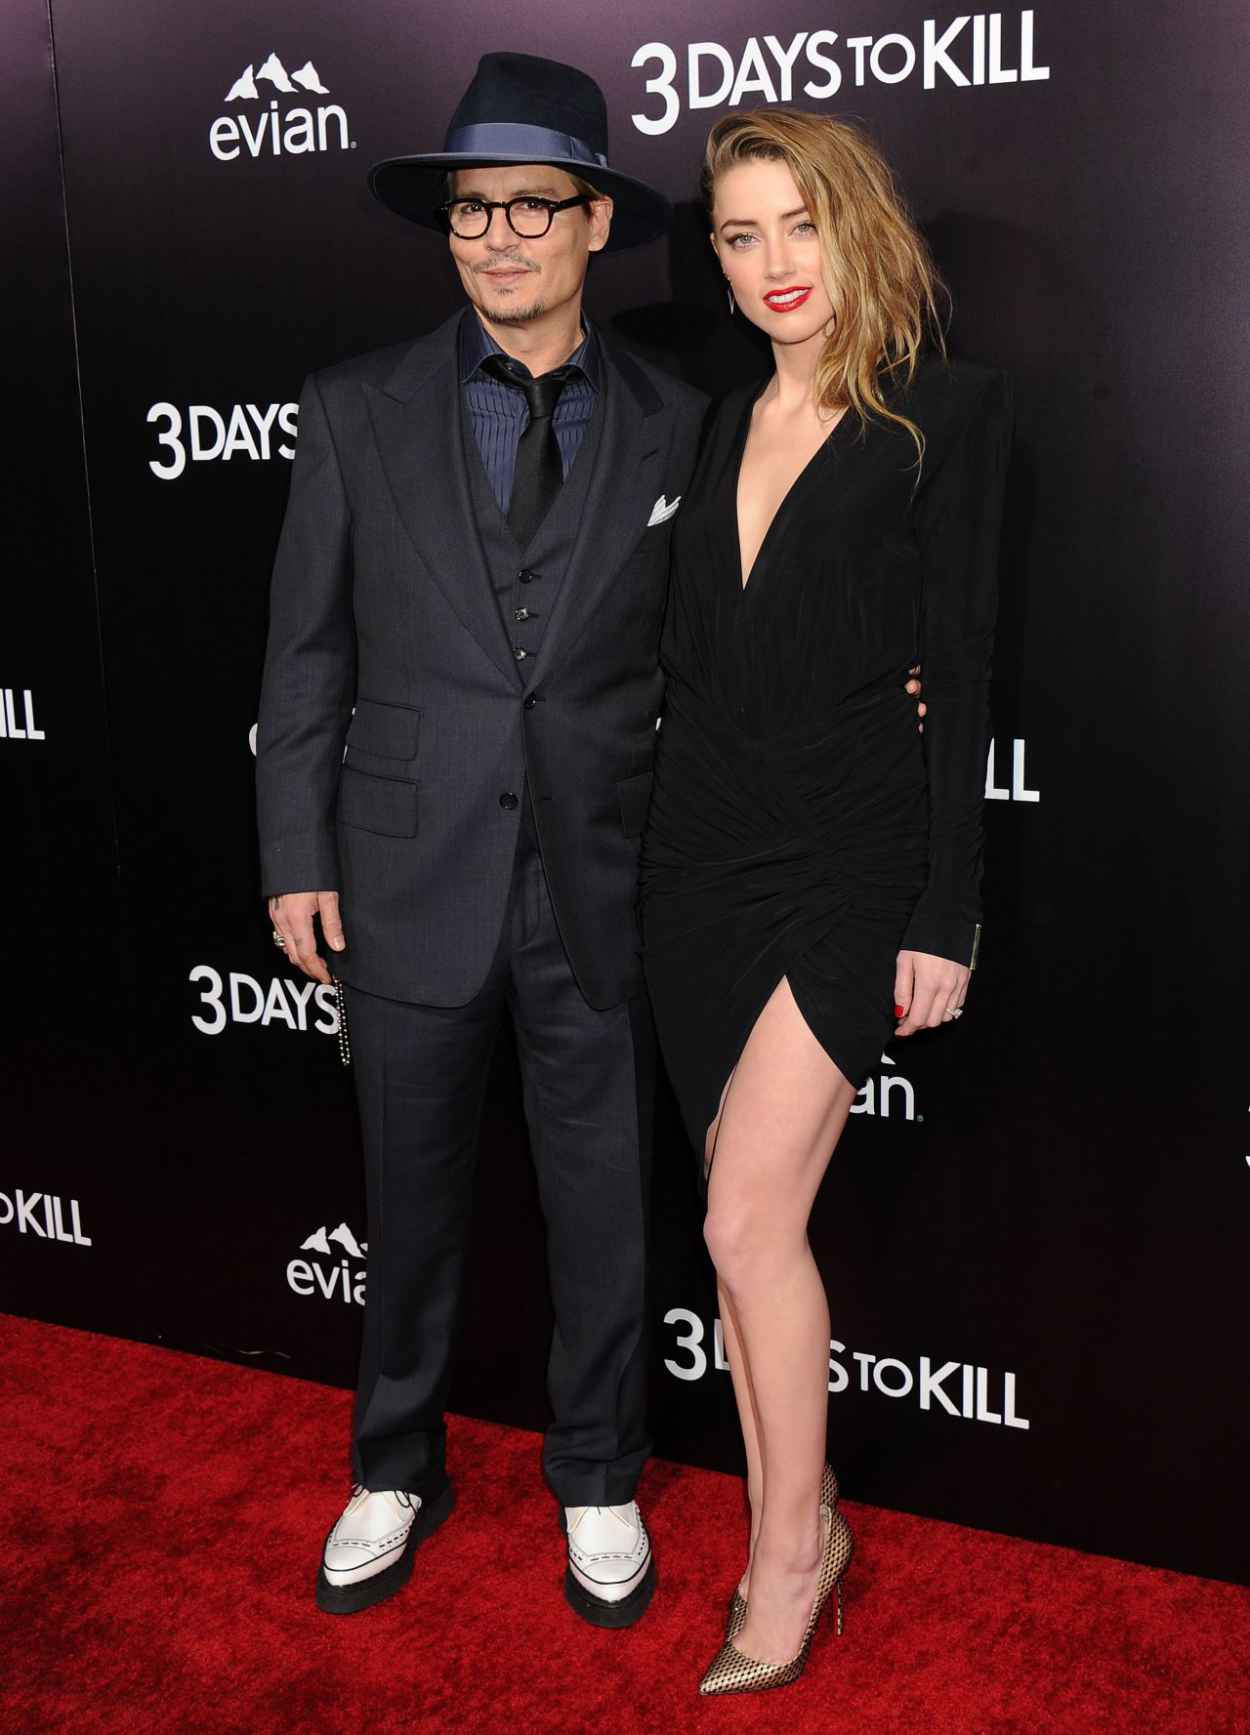 Amber Heard and Johnny Depp - 3 Days To Kill Premiere in Los Angeles, Feb. 2015-1